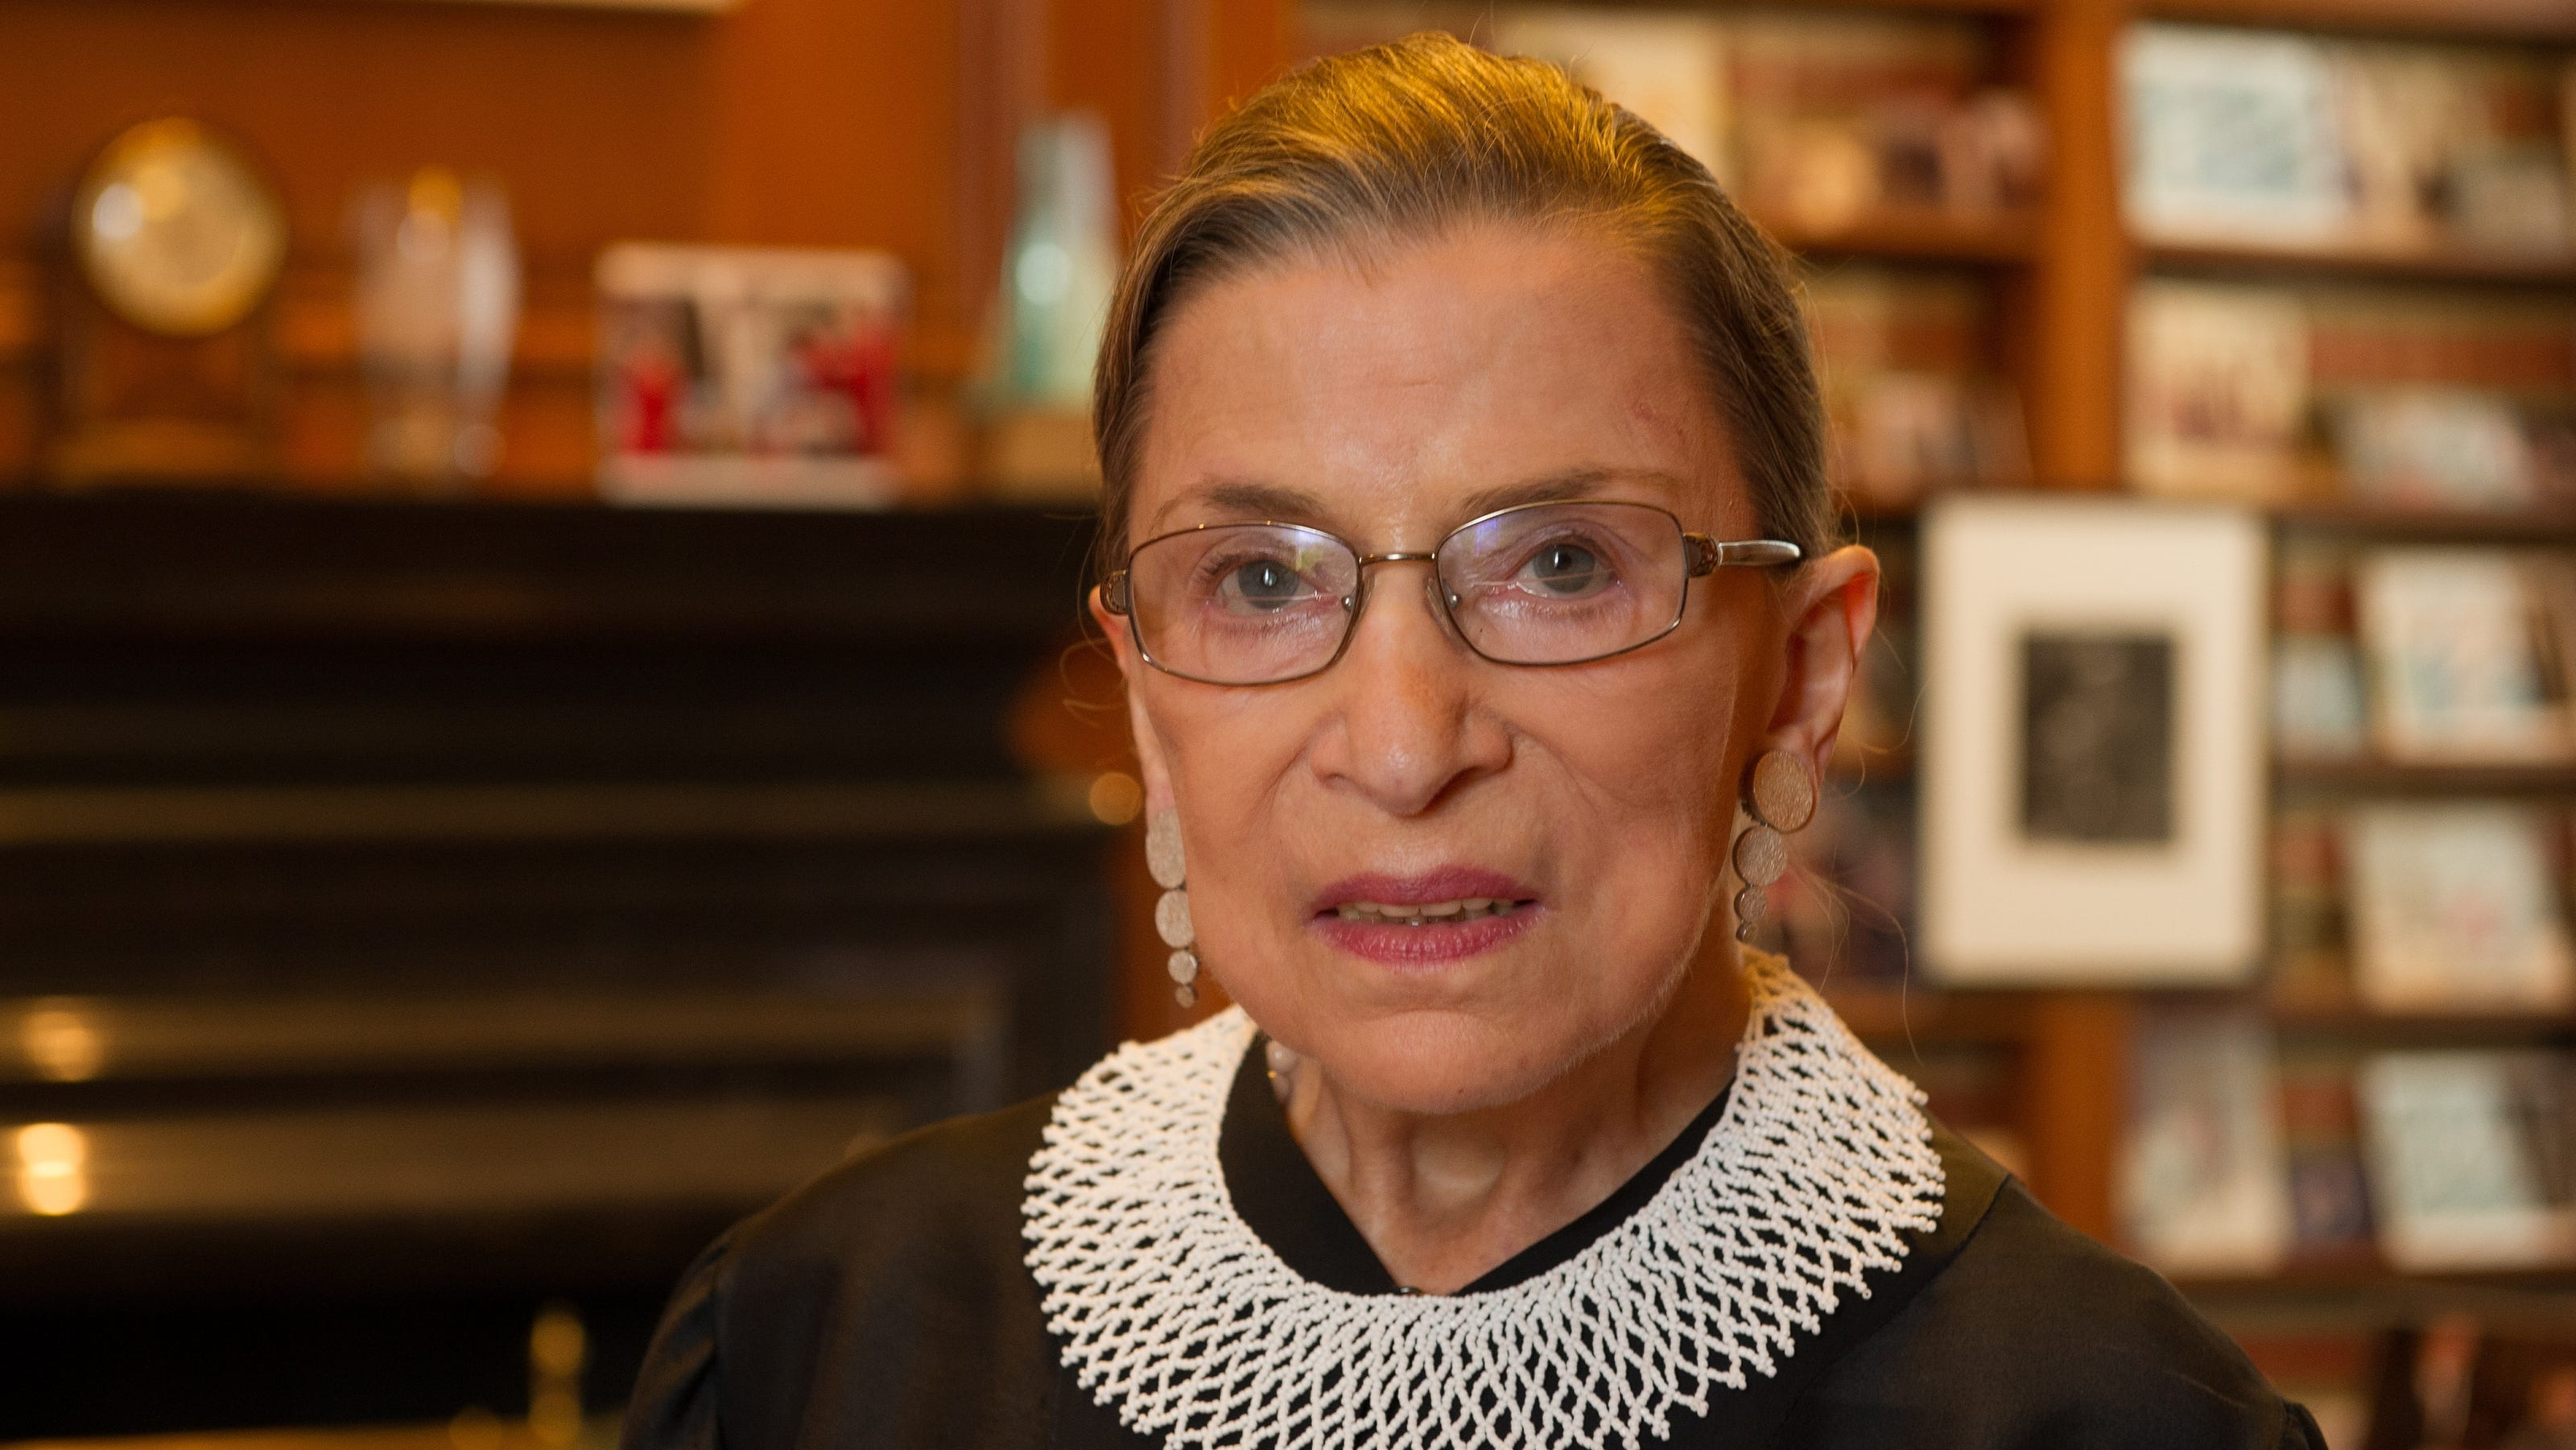 Justice Ruth Bader Ginsburg to lie in state at U.S. Capitol Friday after two days at Supreme Court